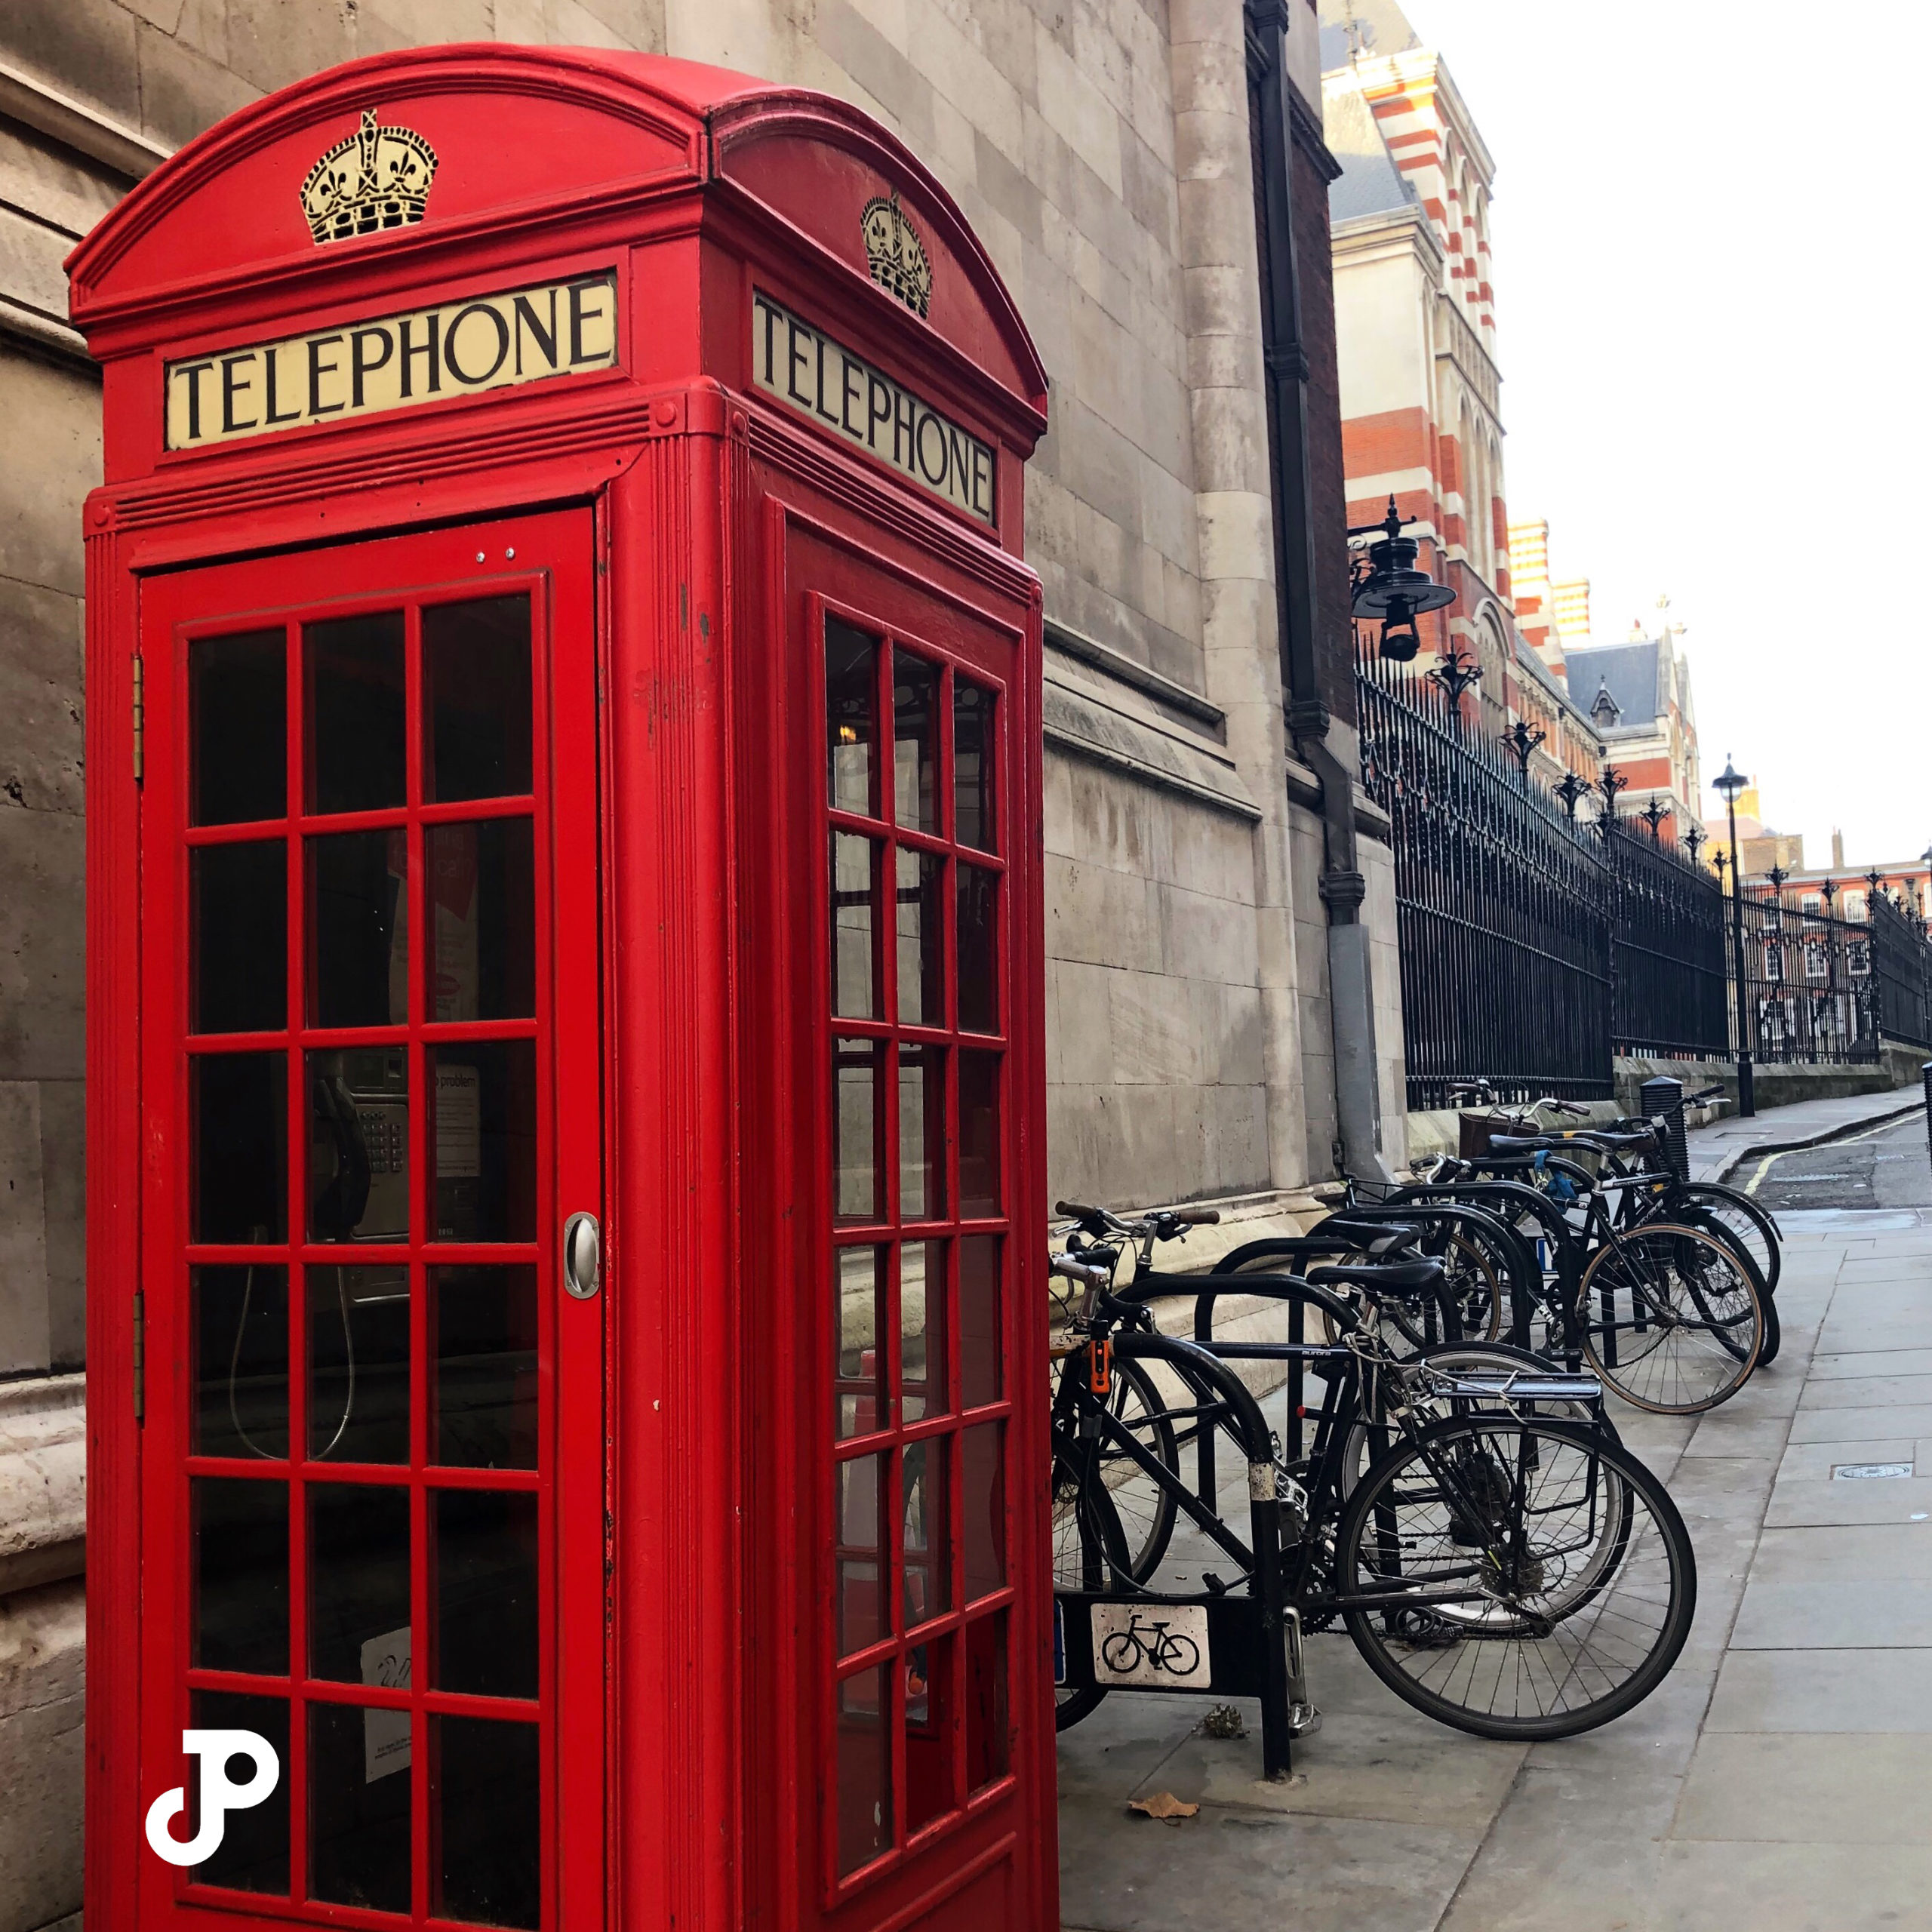 a red phone booth beside a row of bicycles in London